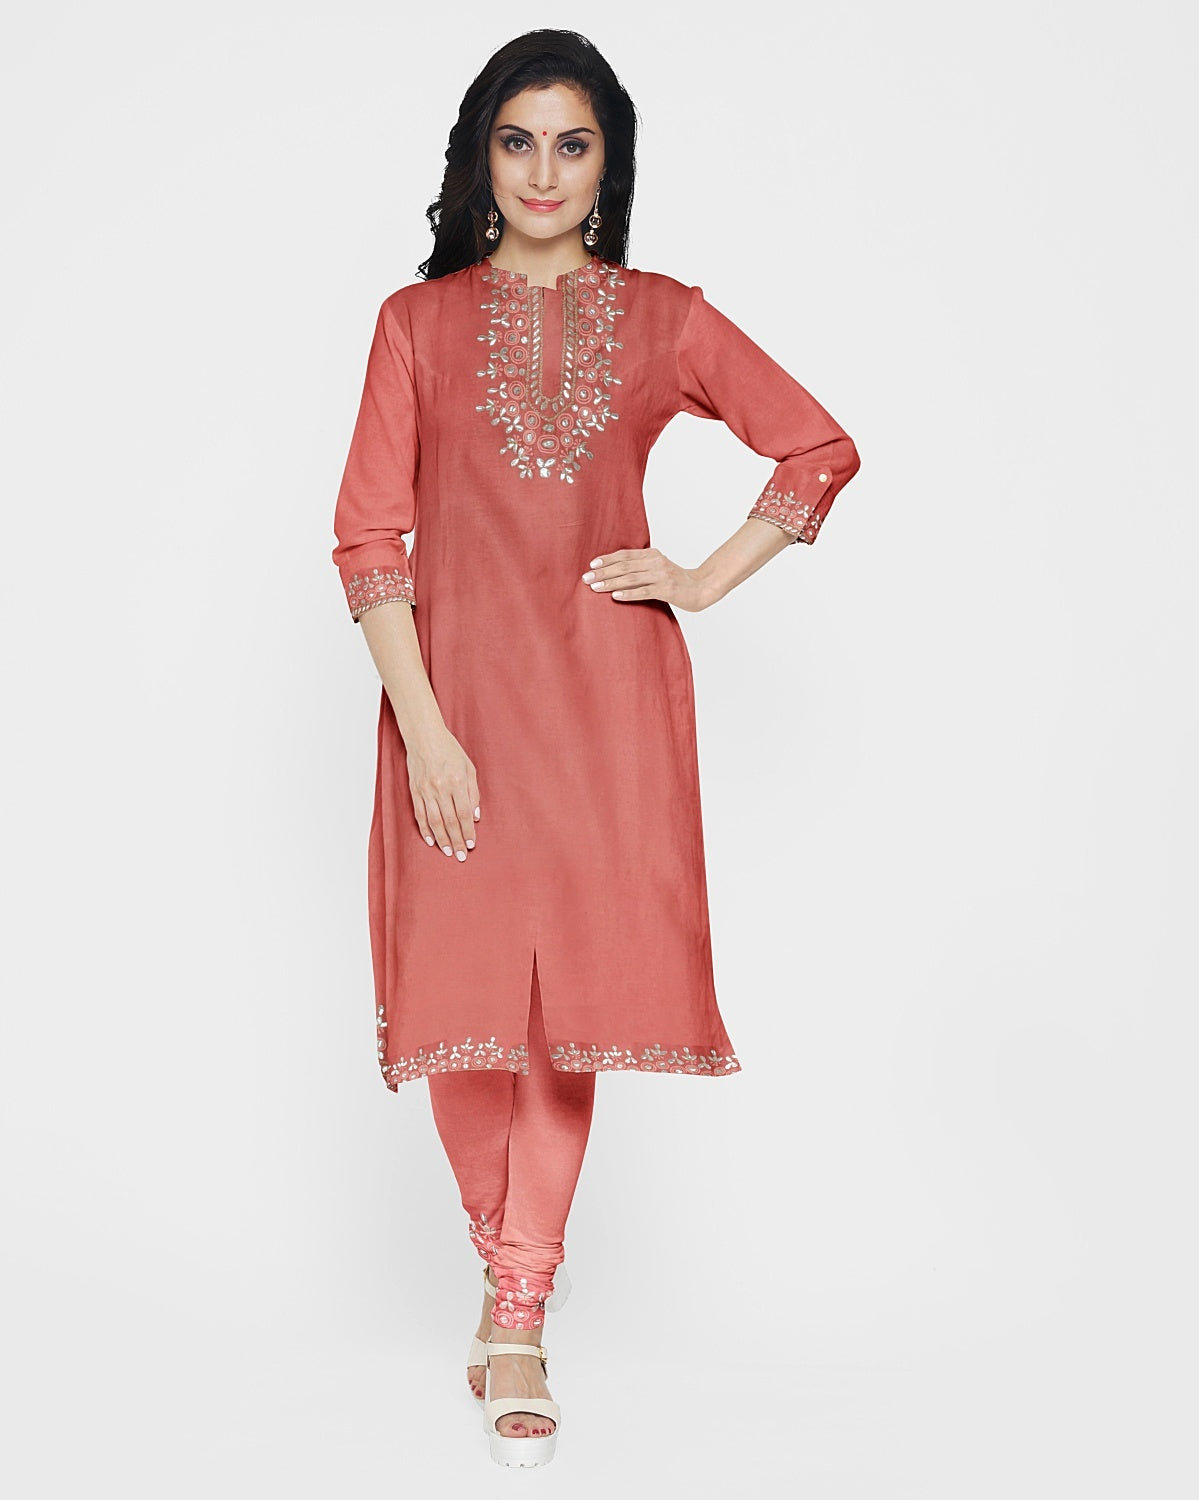 Coral & Peach Gota Patti Suit Fabric Set